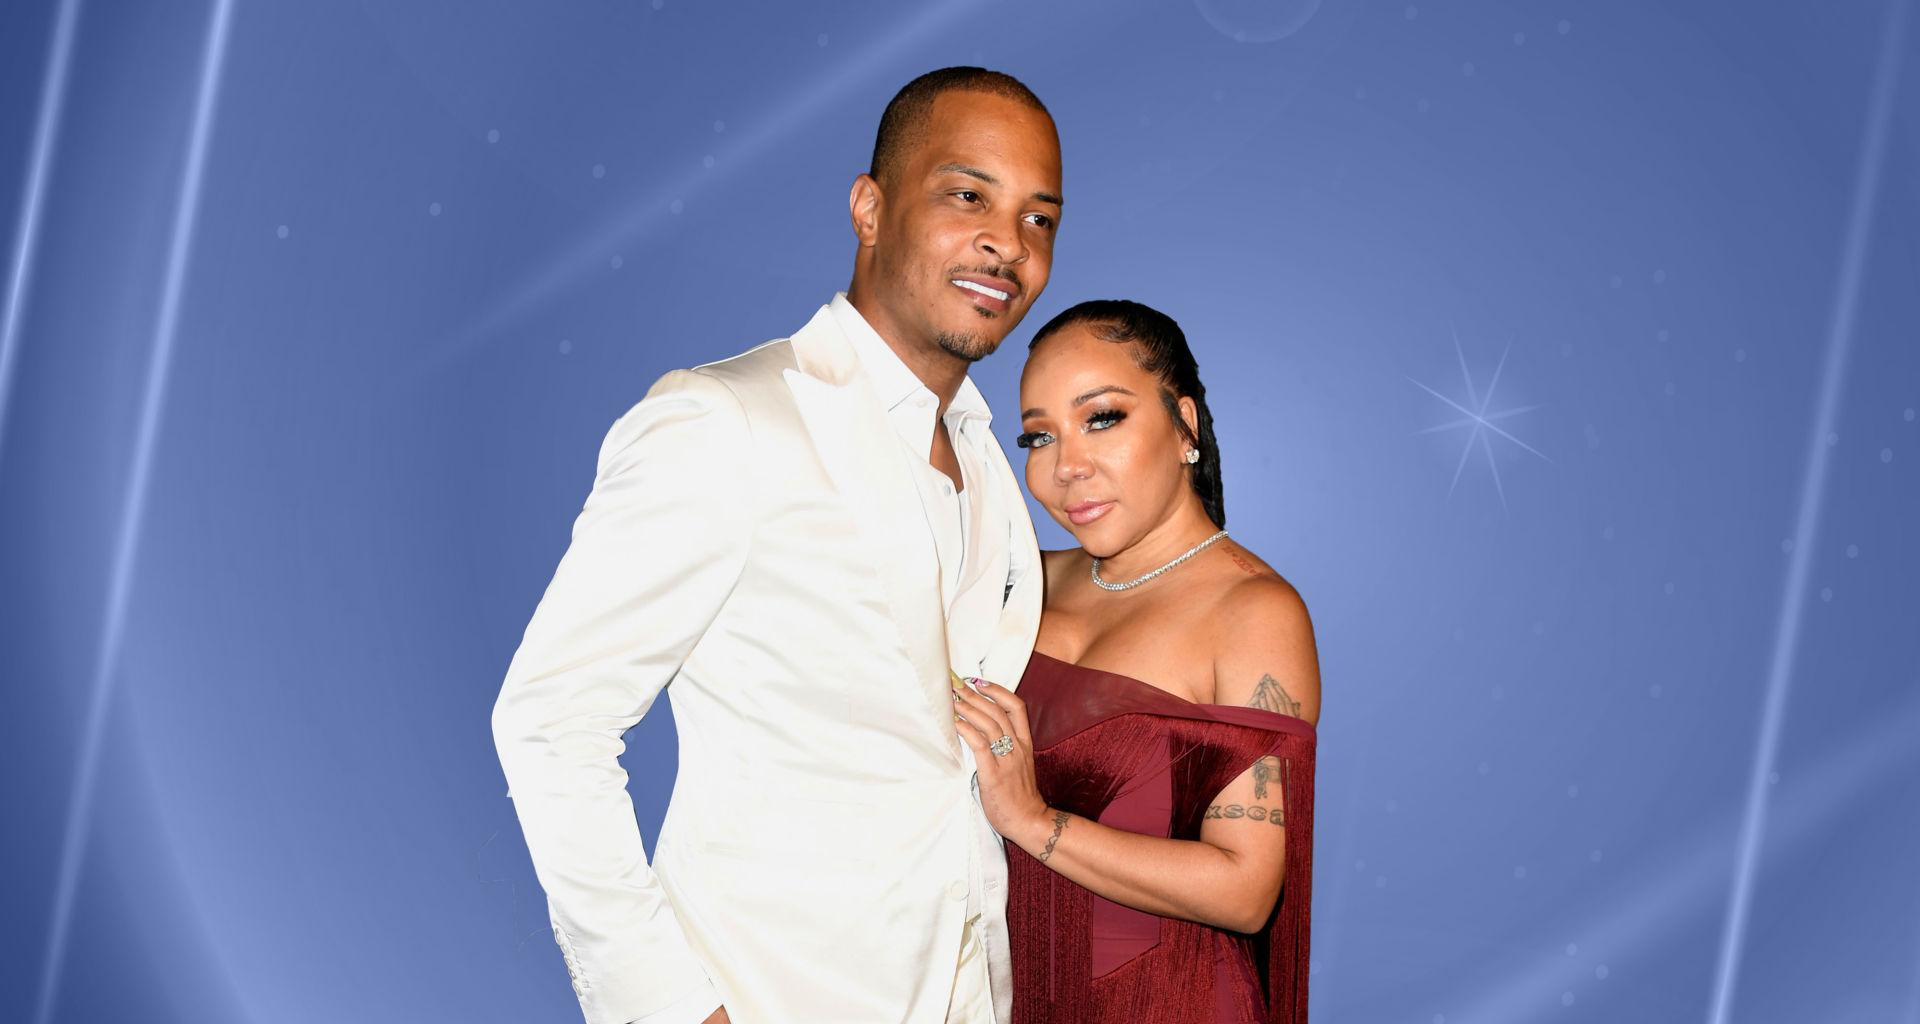 T.I. Raves About His 'Tolerant Wife' Tiny Harris - Admits He Wasn't 'Ready' For Marriage At First!